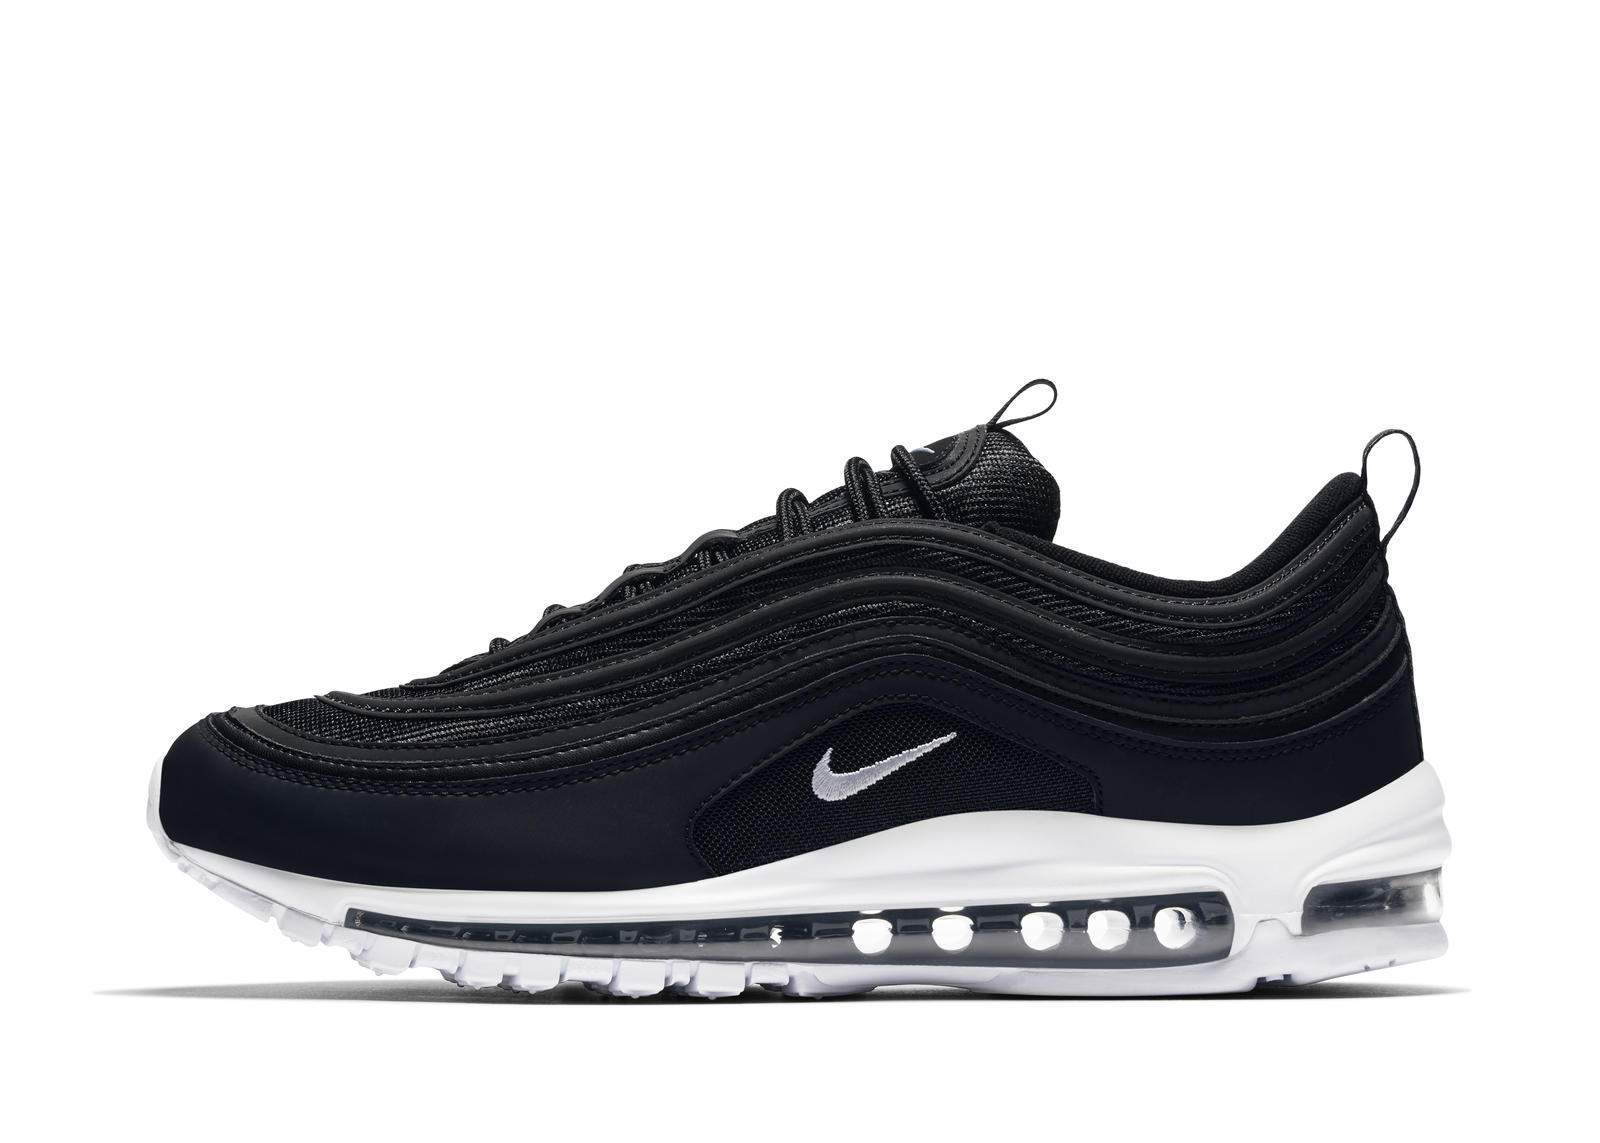 New Fall Colorways for the Air Max 97 - Nike News 823cbd24ba1e